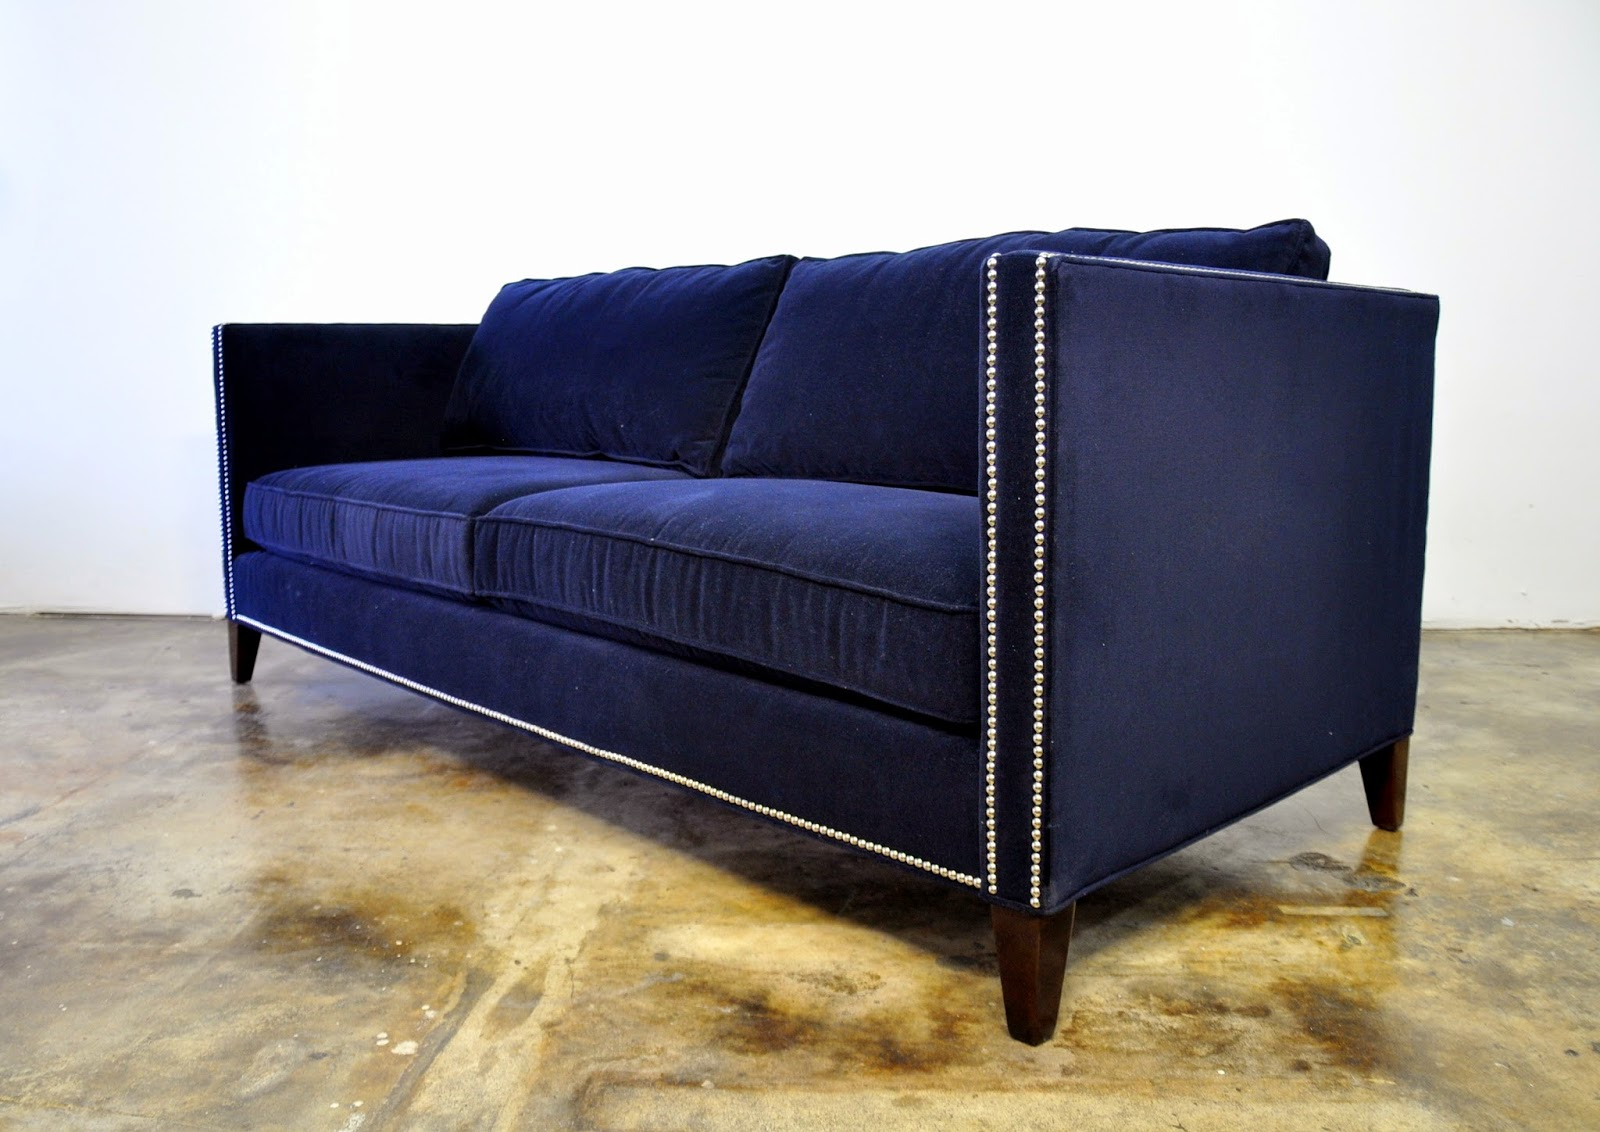 Select modern mitchell gold bob williams sofa for Blue couches for sale